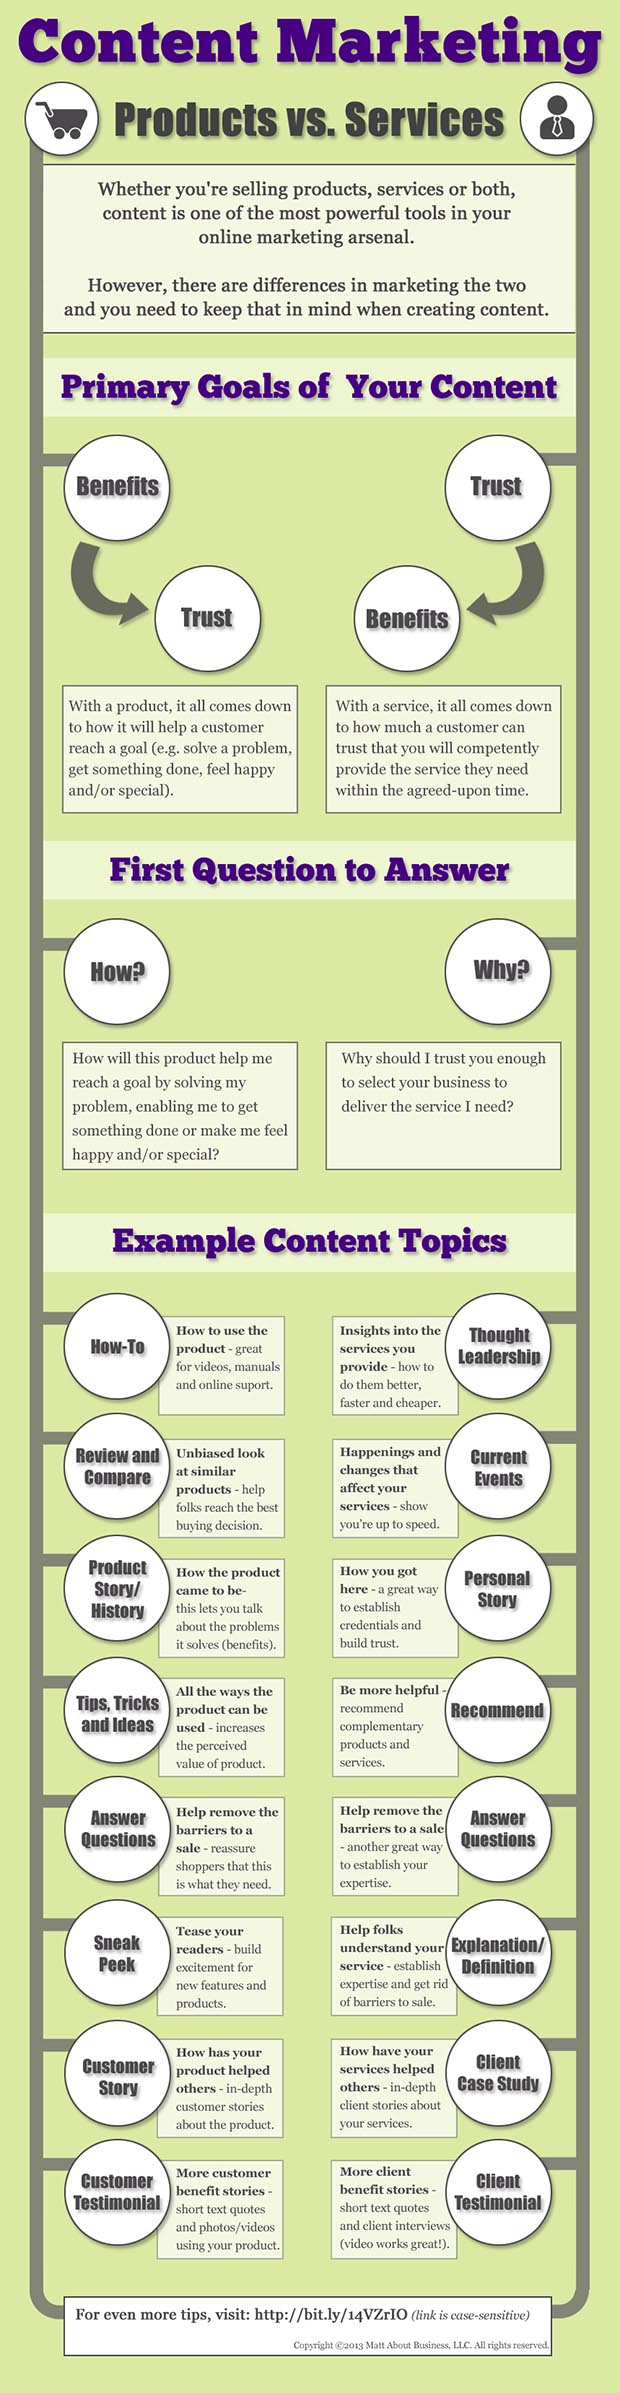 Find the best content marketing ideas, whether you sell products or services. This insightful infographic is a valuable source of ideas for both businesses!